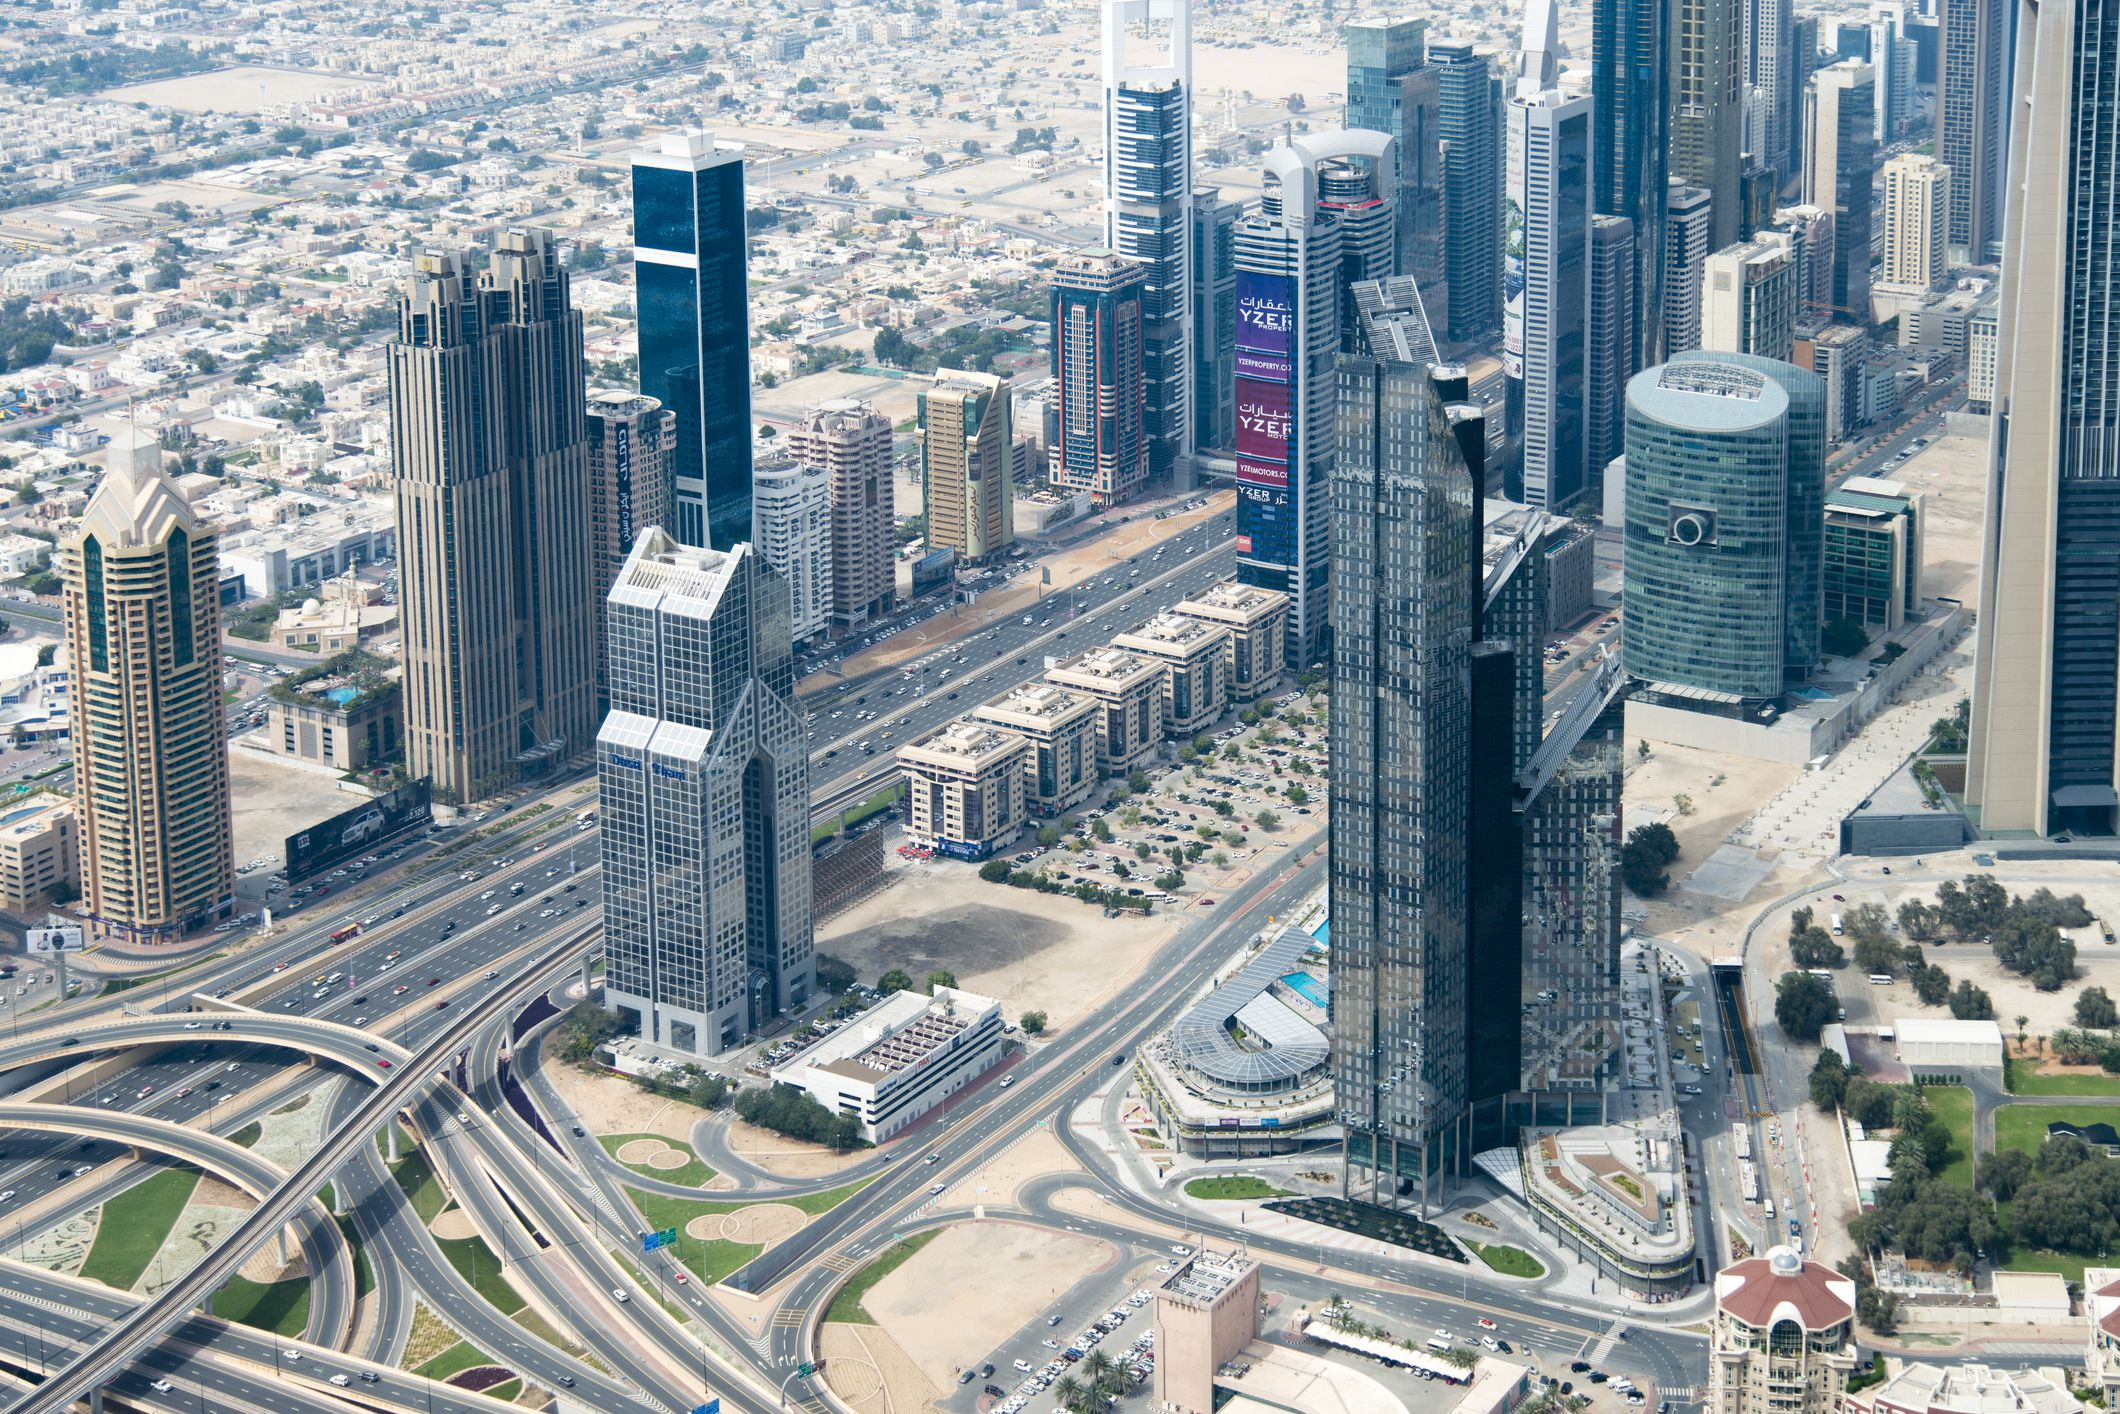 View of downtown Dubai, UAE from helicopter